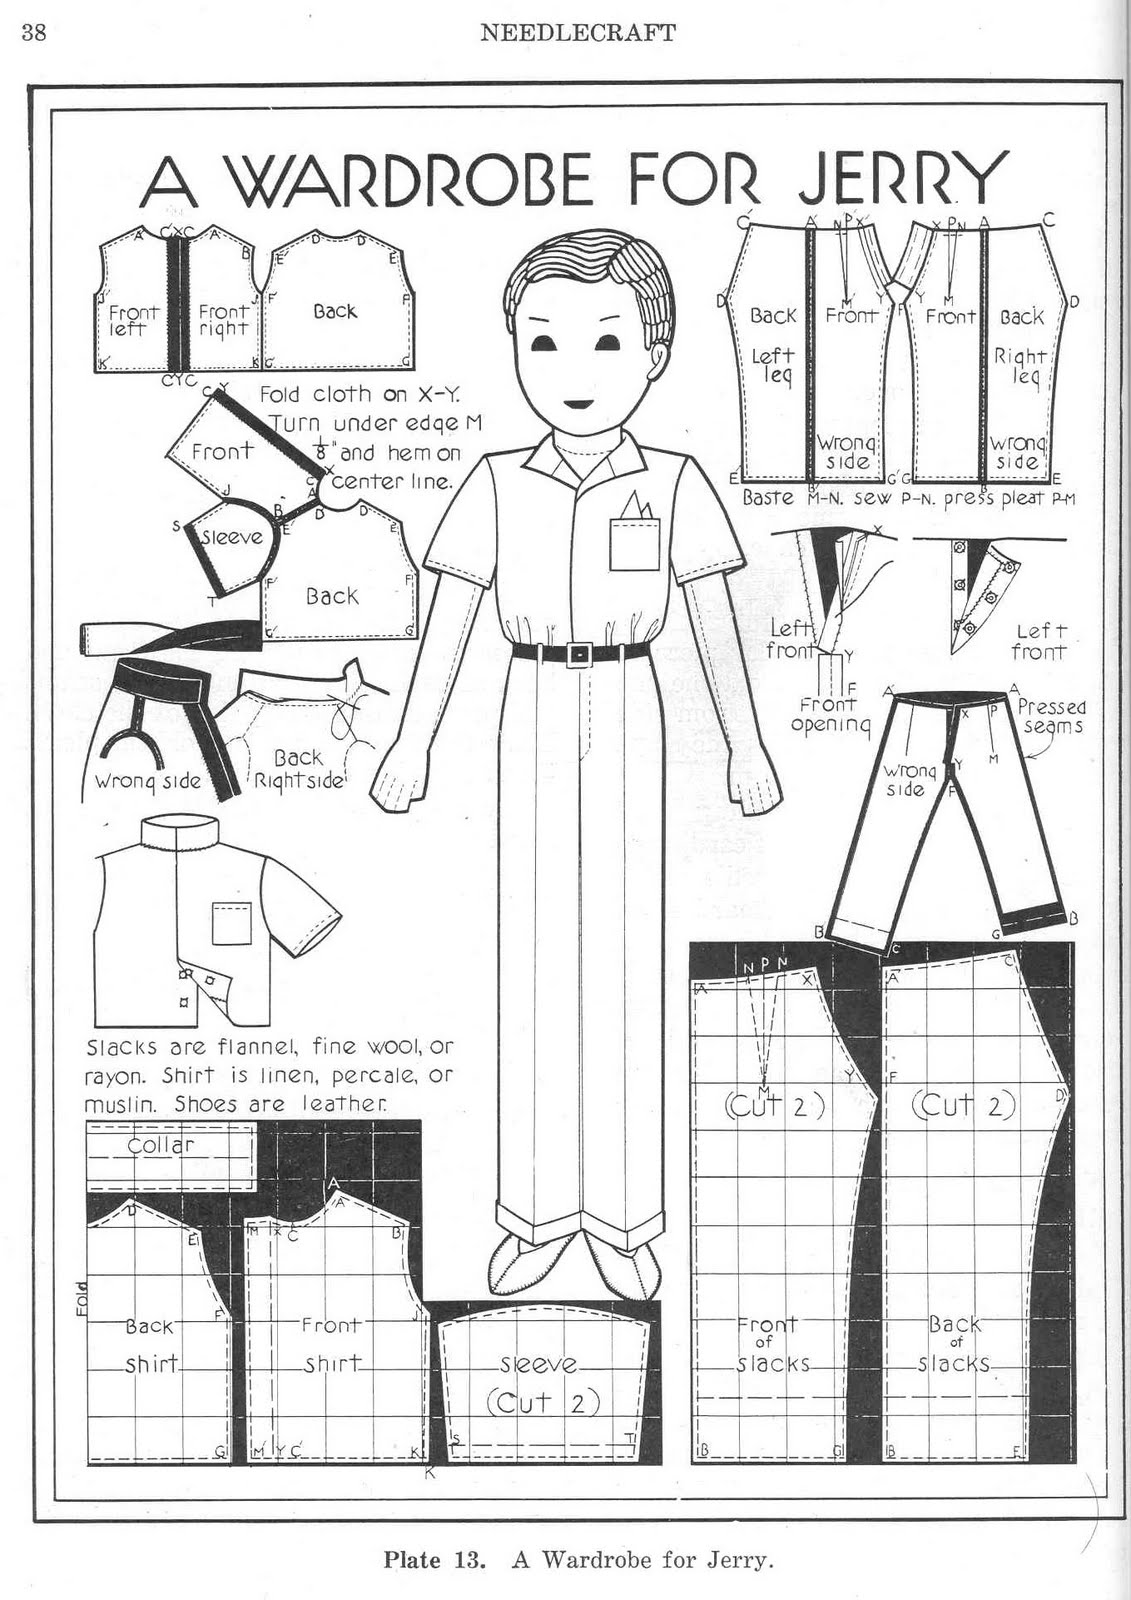 White apron hobbycraft